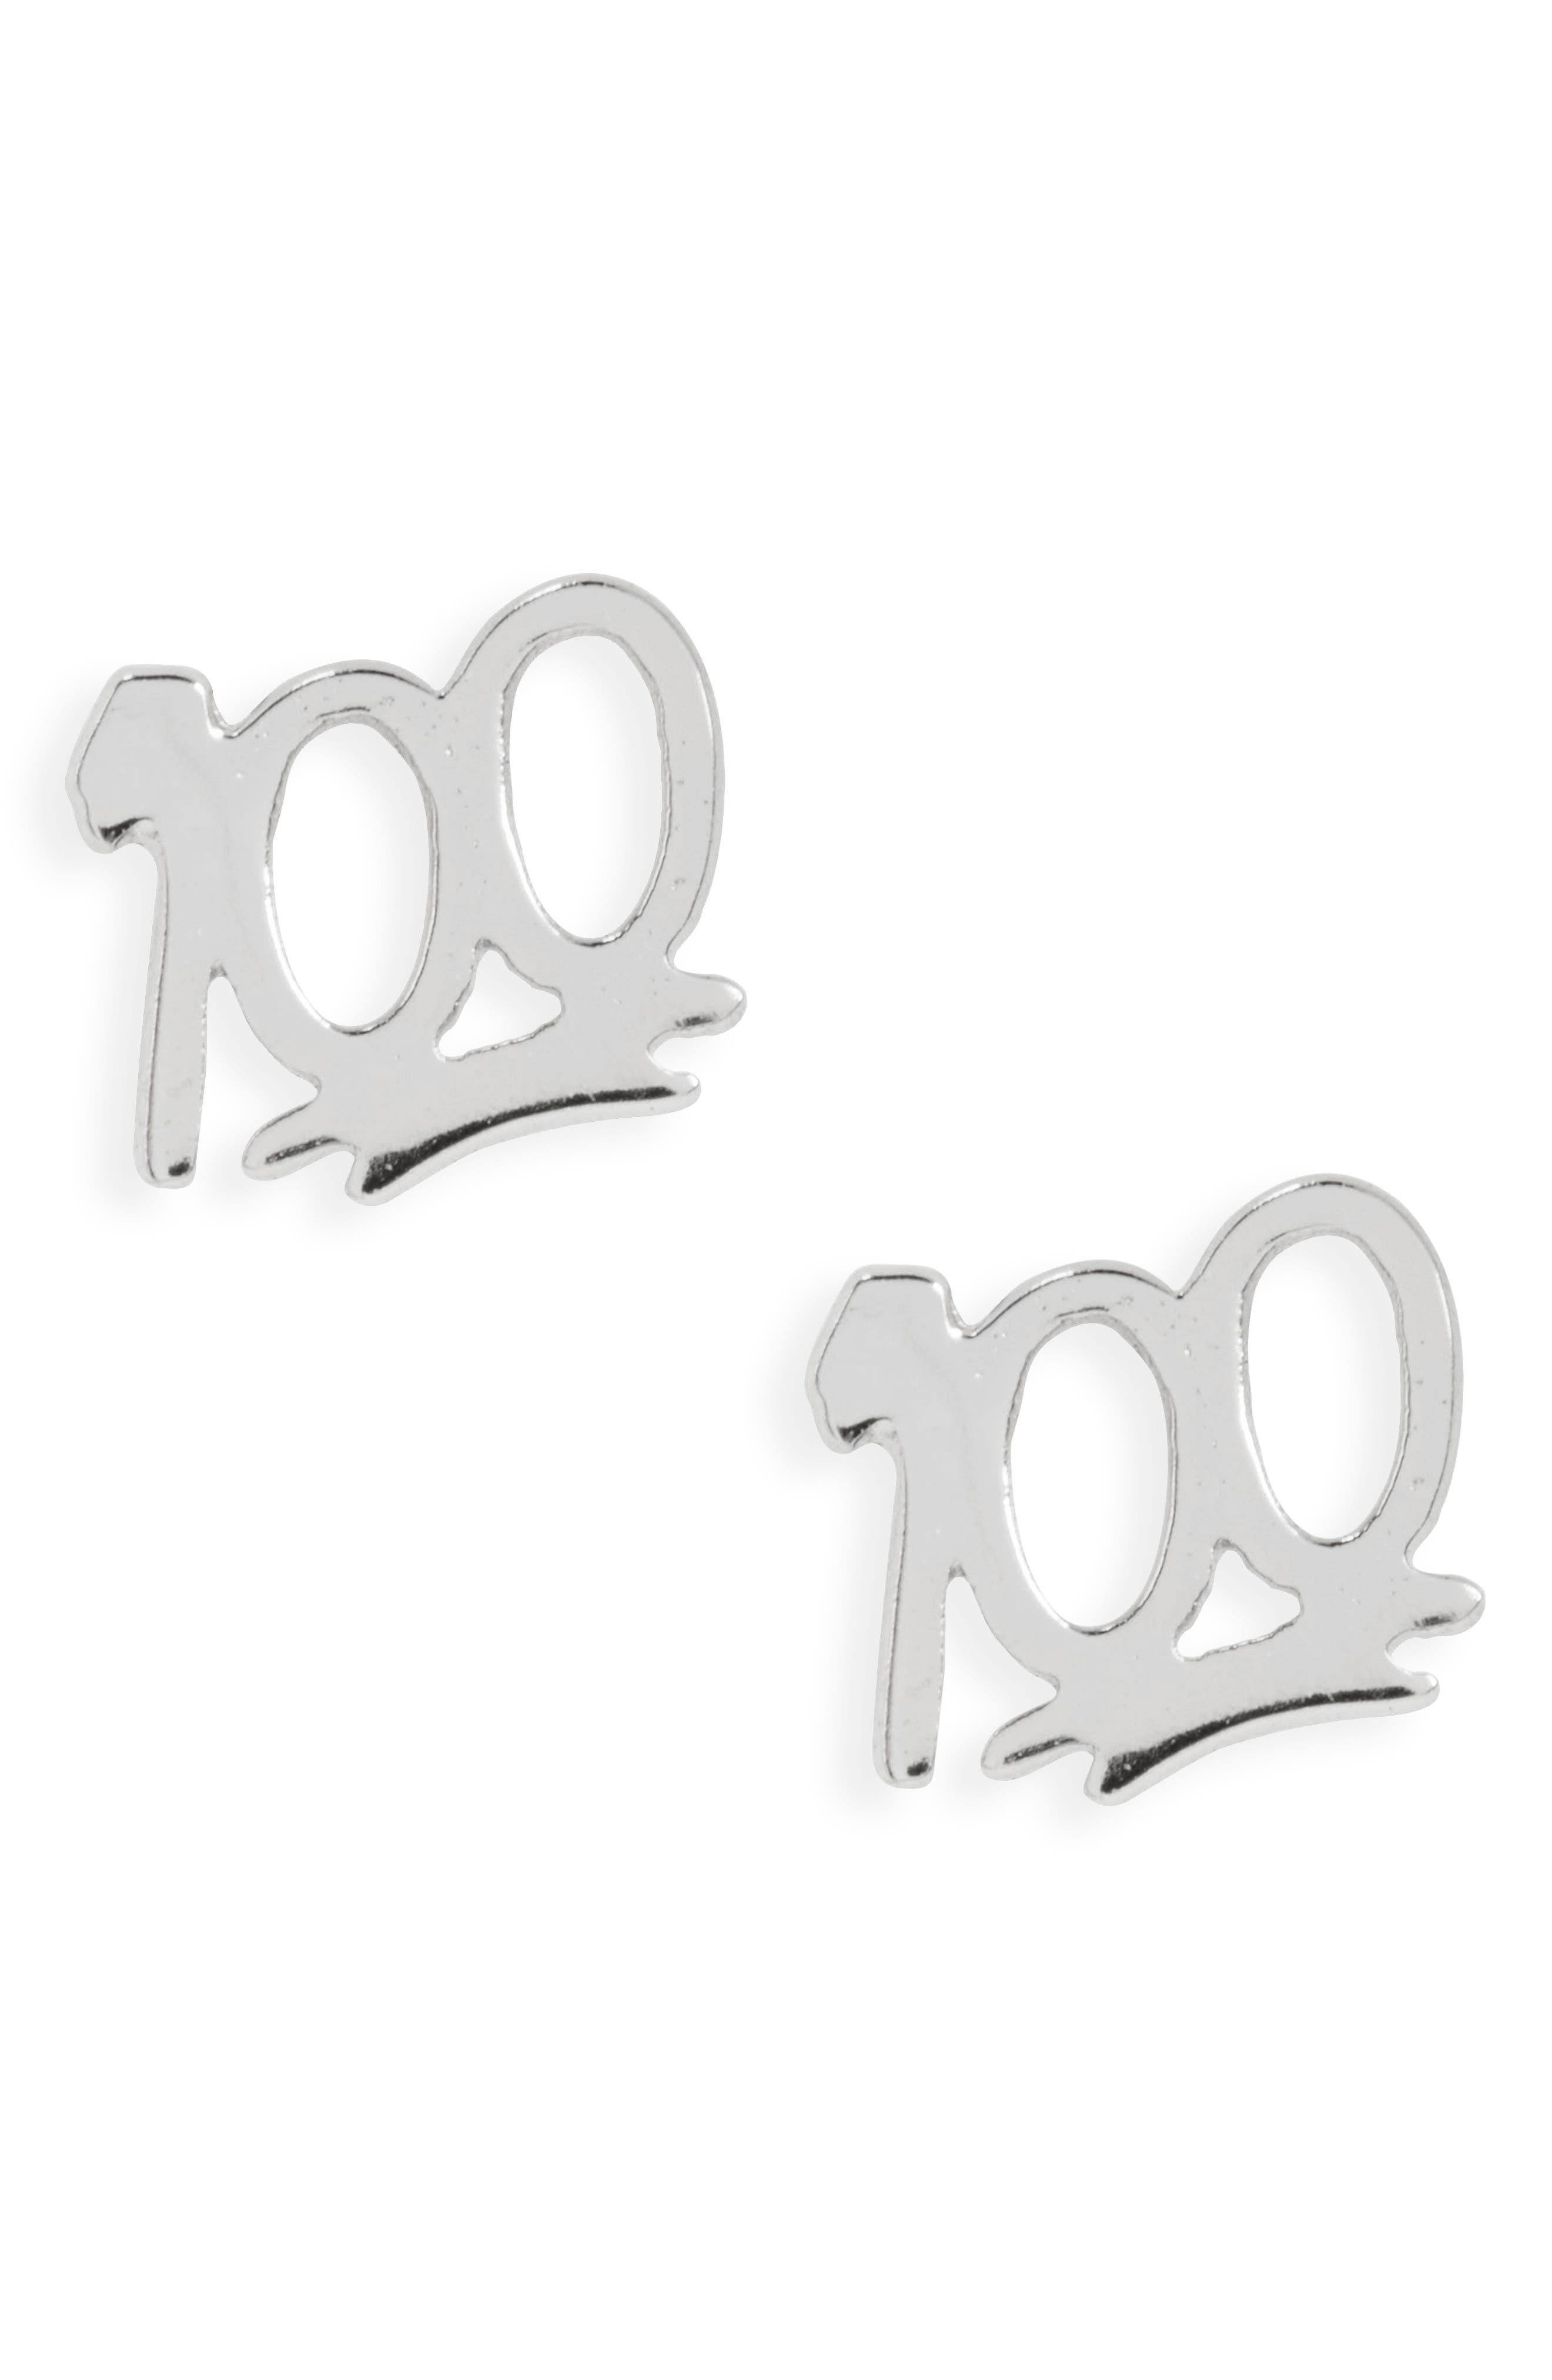 100 Stud Earrings,                         Main,                         color, SILVER